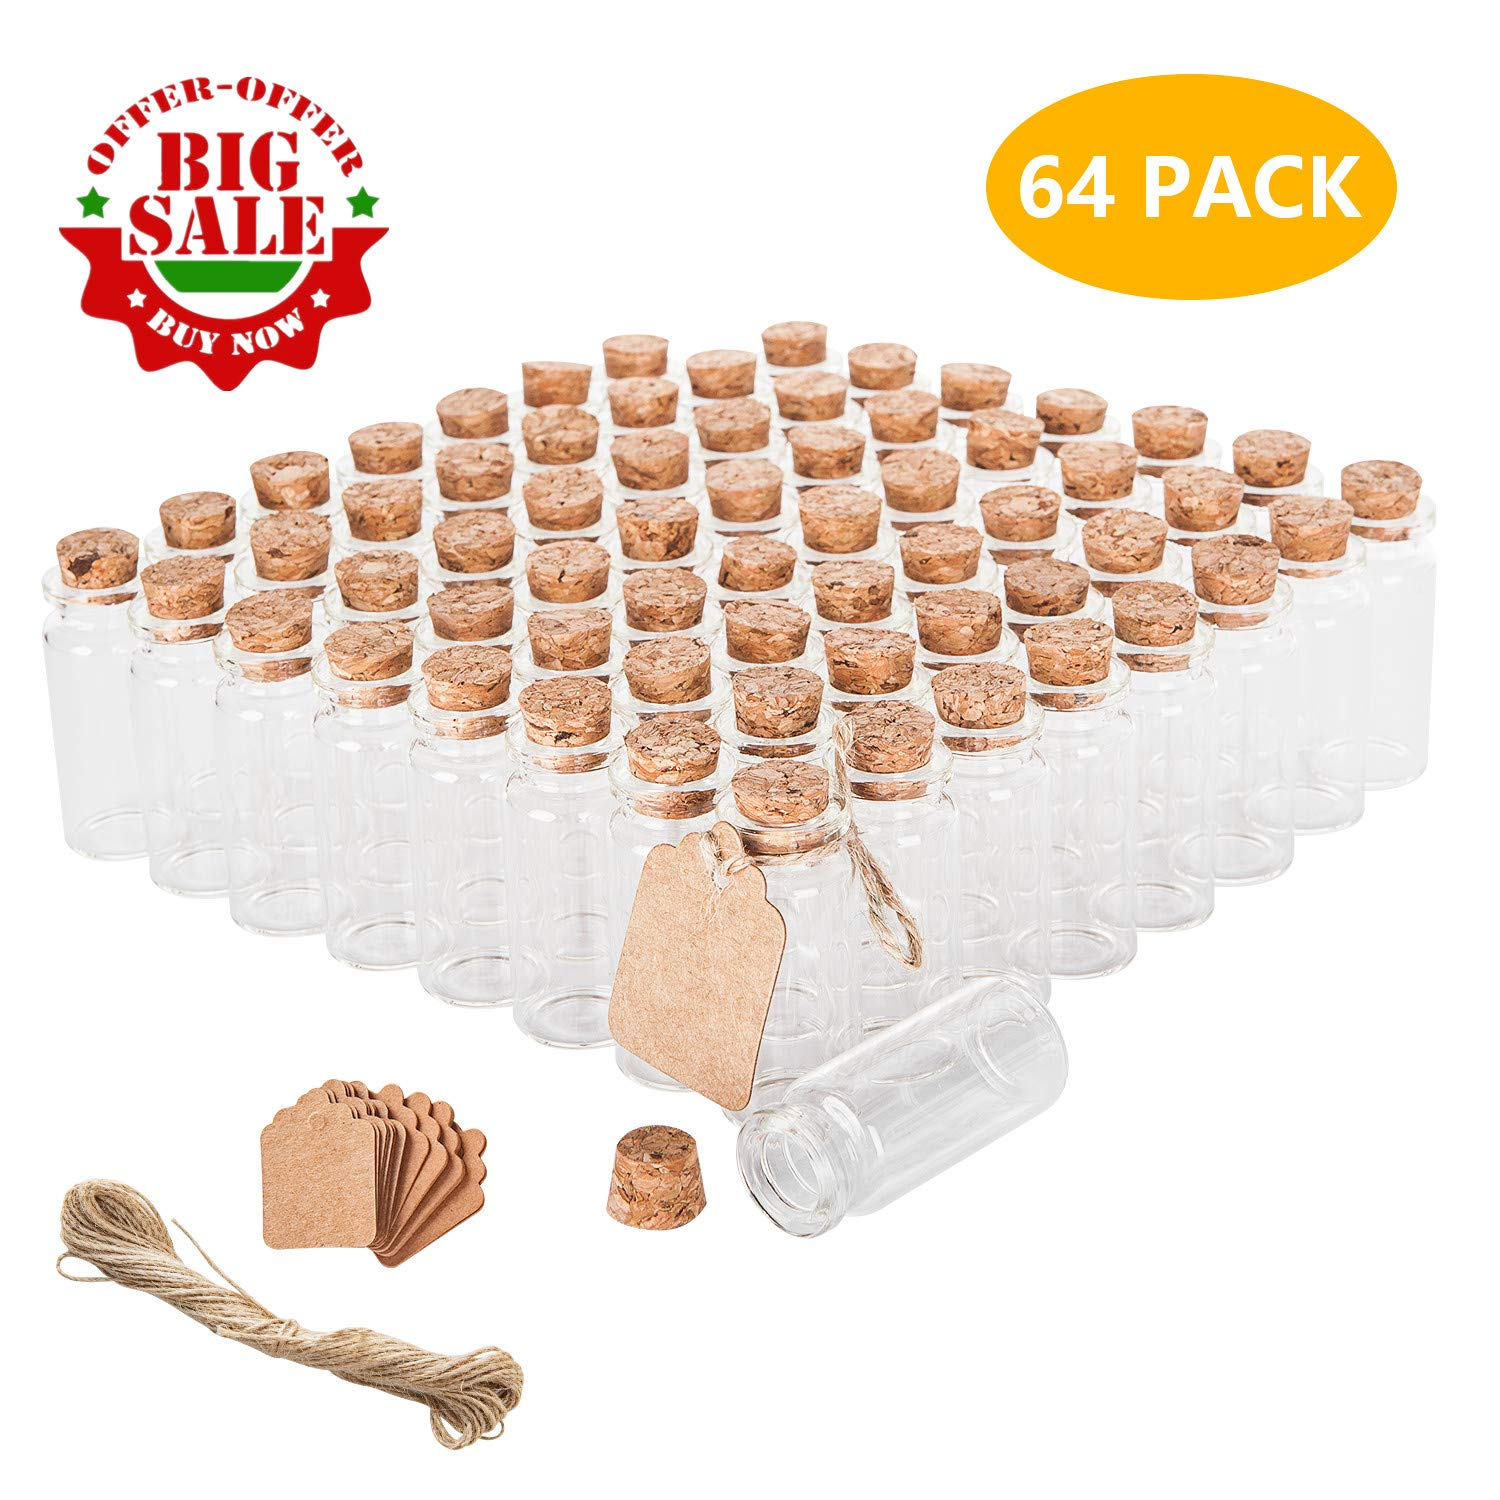 Brajttt 64PCS Cork Stoppers Glass Bottles, DIY Decoration Tiny Glass Jars Favors,Mini Vials Cork,10ml Storage Container for Art Crafts,Small Glass Jars for Wedding Party Supplies by Brajttt